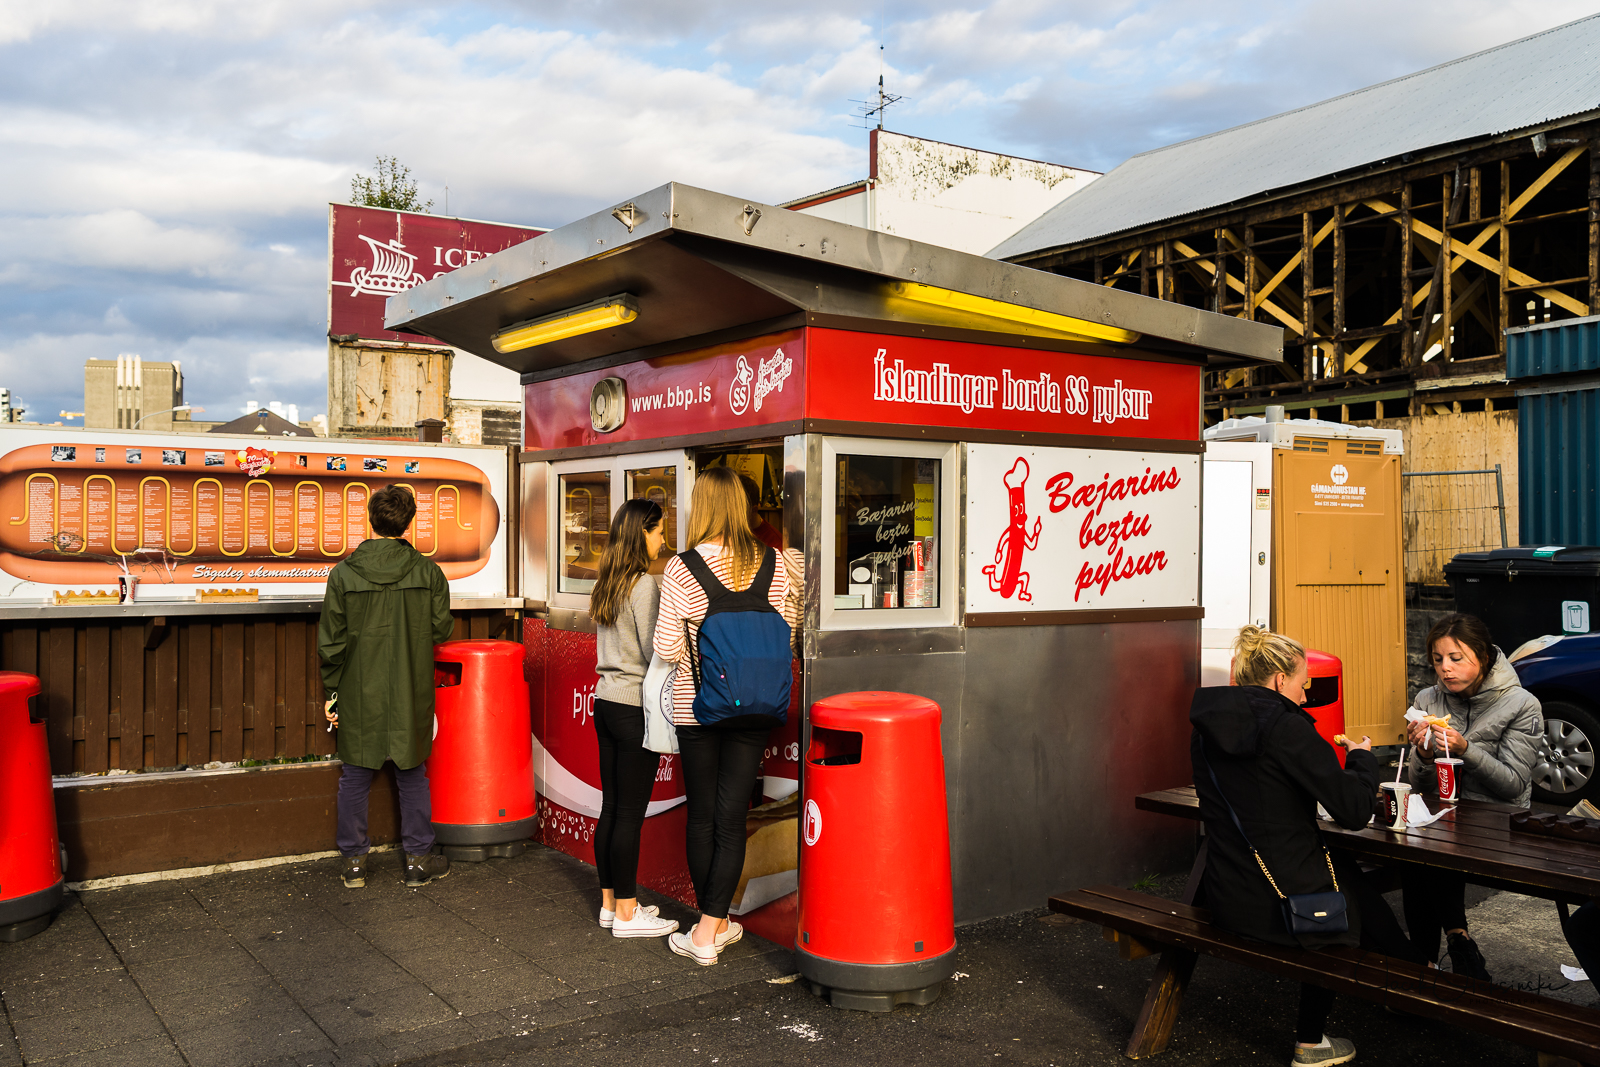 Hot dogs are very popular in Iceland. This one has had customers like Bill Clinton